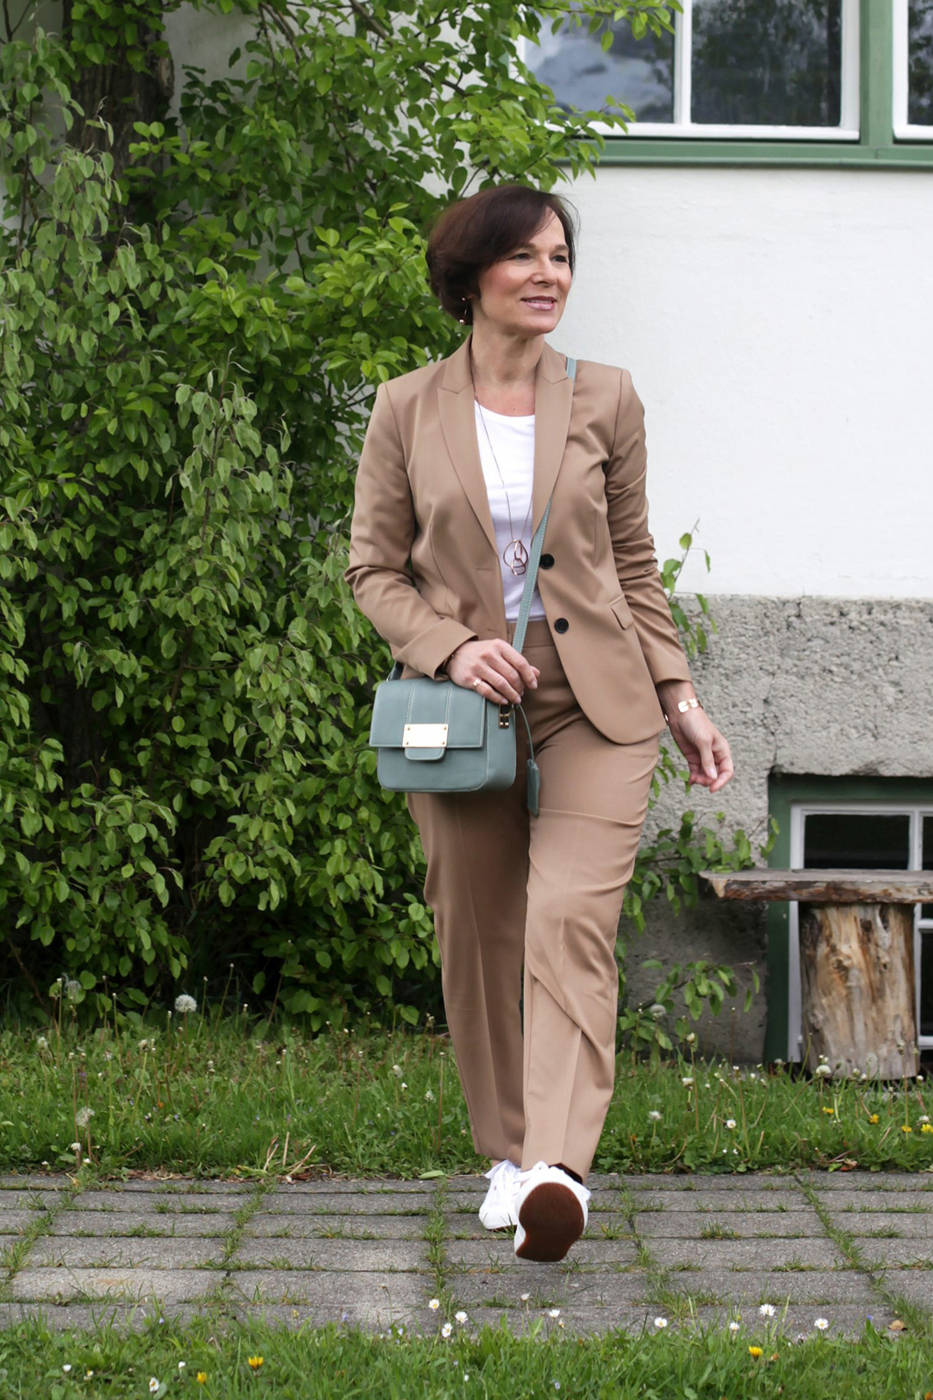 LadyofStyle Hosenanzug Businesslook Powersuit Bürolook Hallhuber Sneakers 50plus Blogger